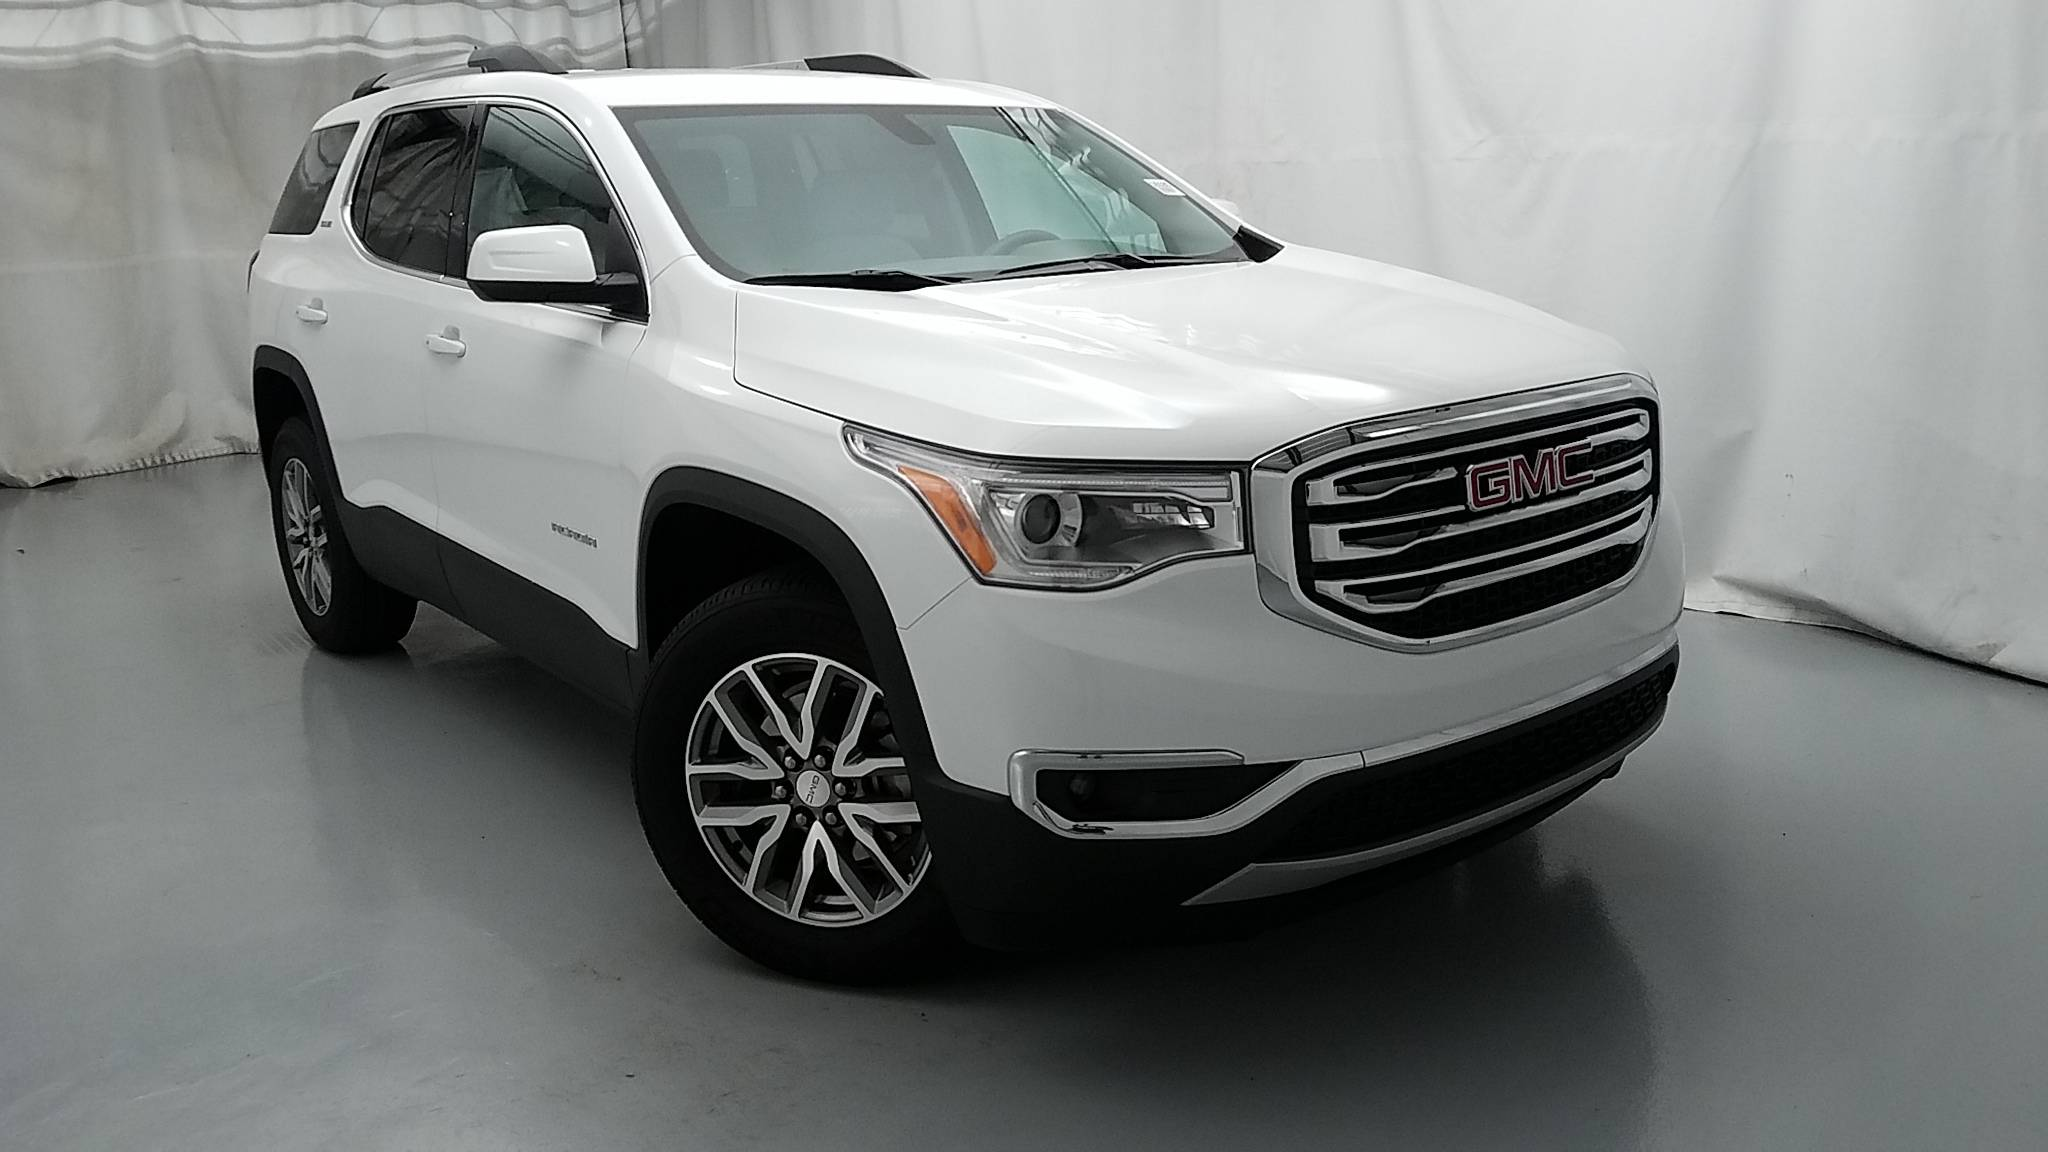 Used GMC Vehicles for Sale in Hammond LA